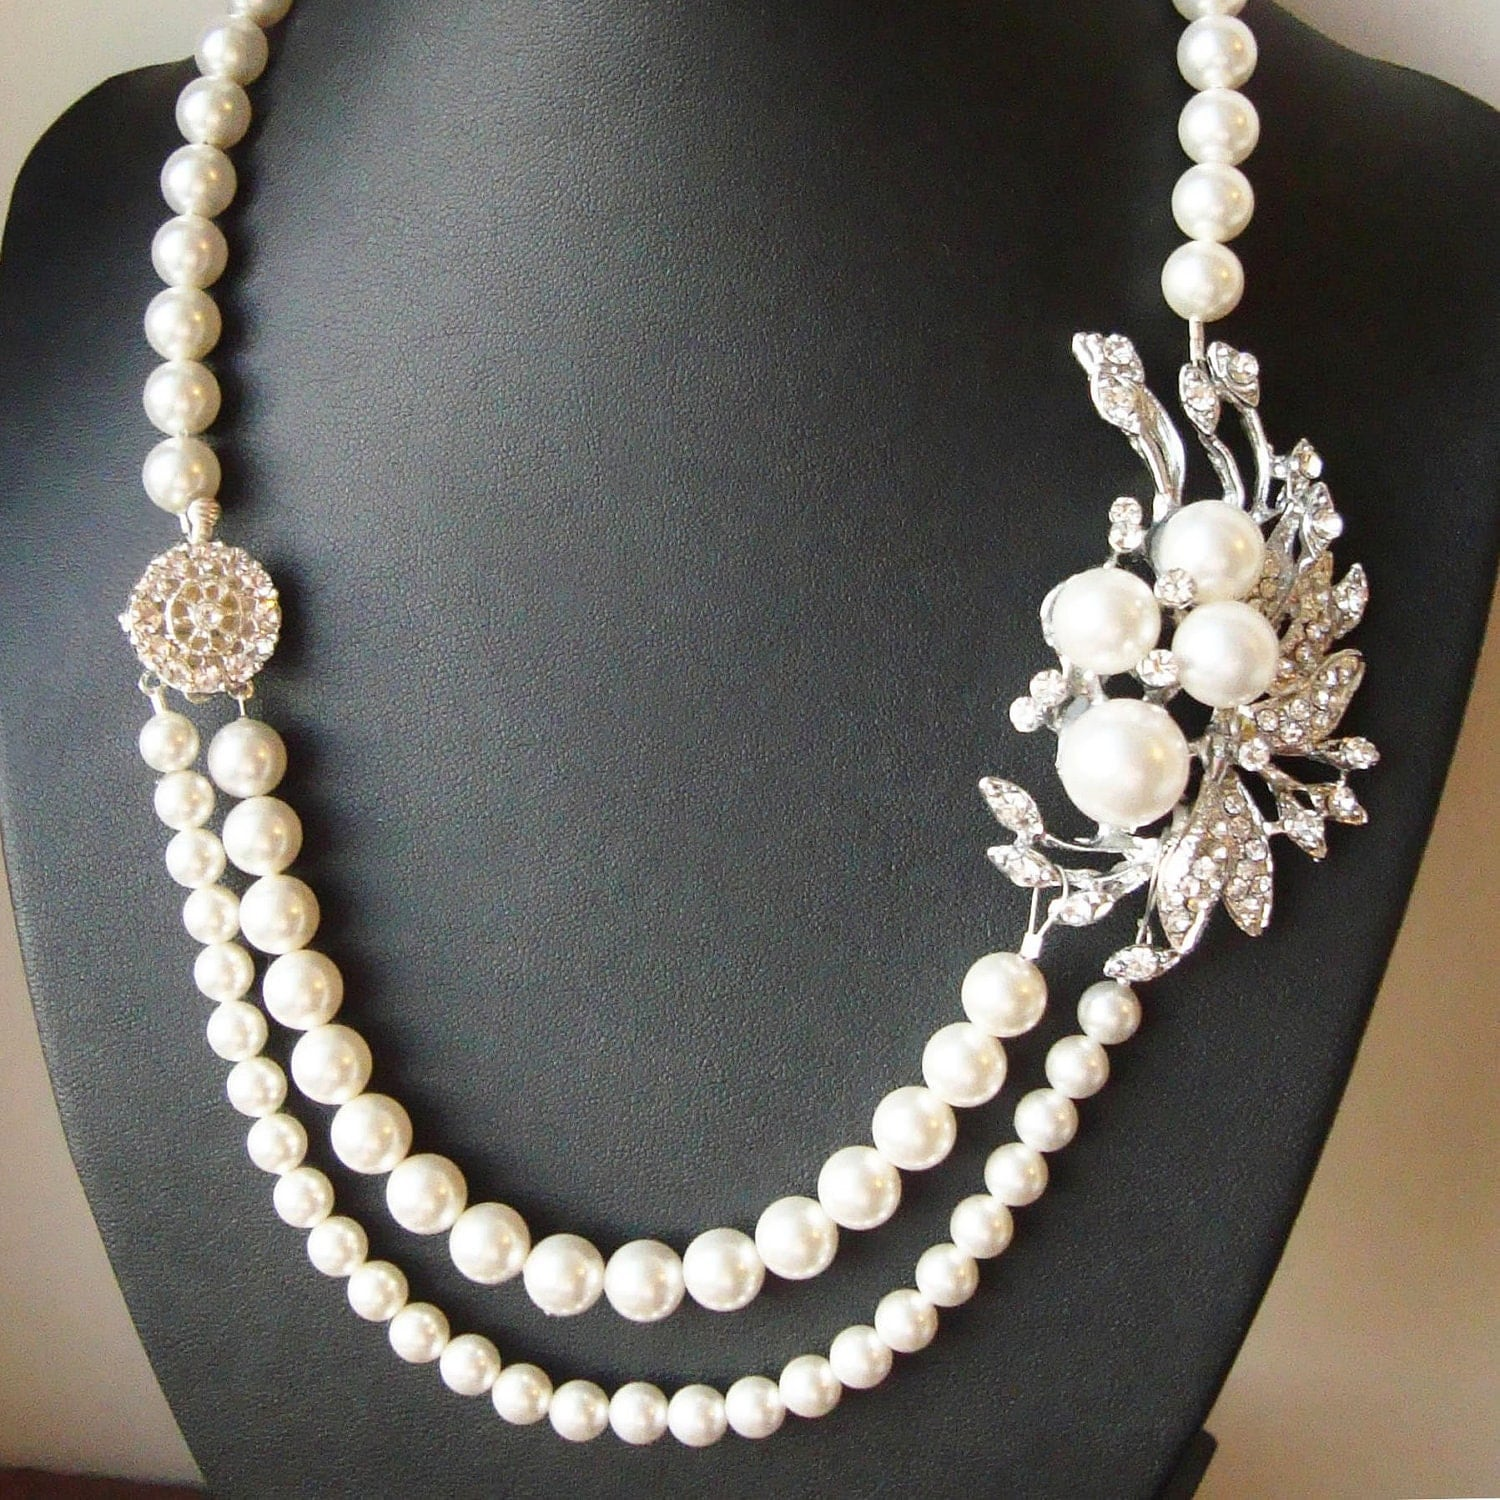 Vintage Pearl Choker Necklace: Vintage Style Bridal Necklace Pearl Bridal Wedding Jewelry